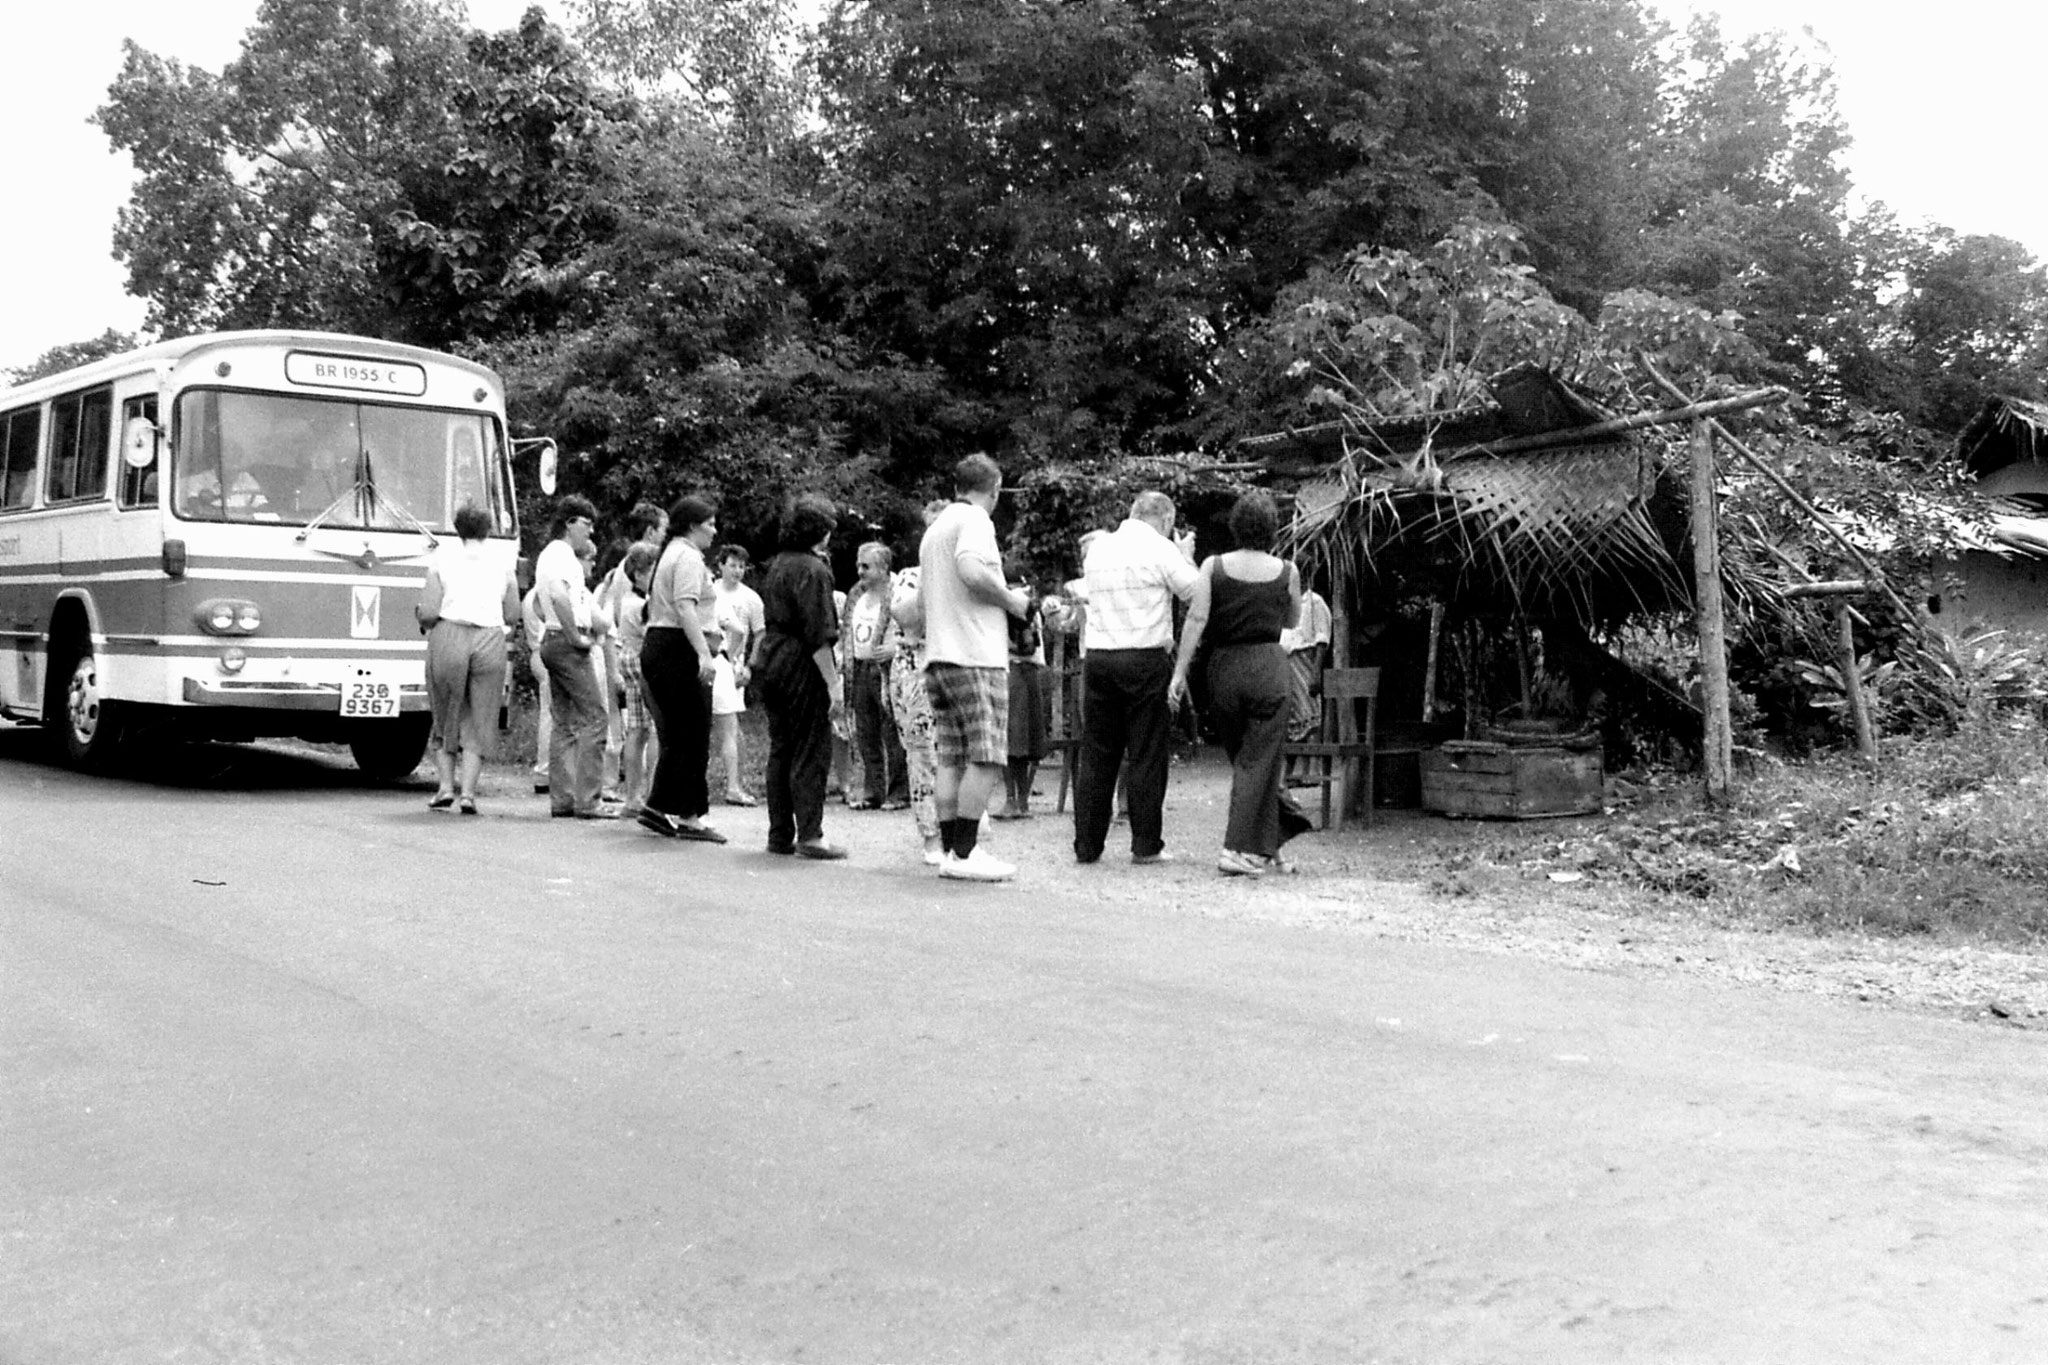 7/2/90: 7: tourists with snake between Sigiriya and Polonnaruwa